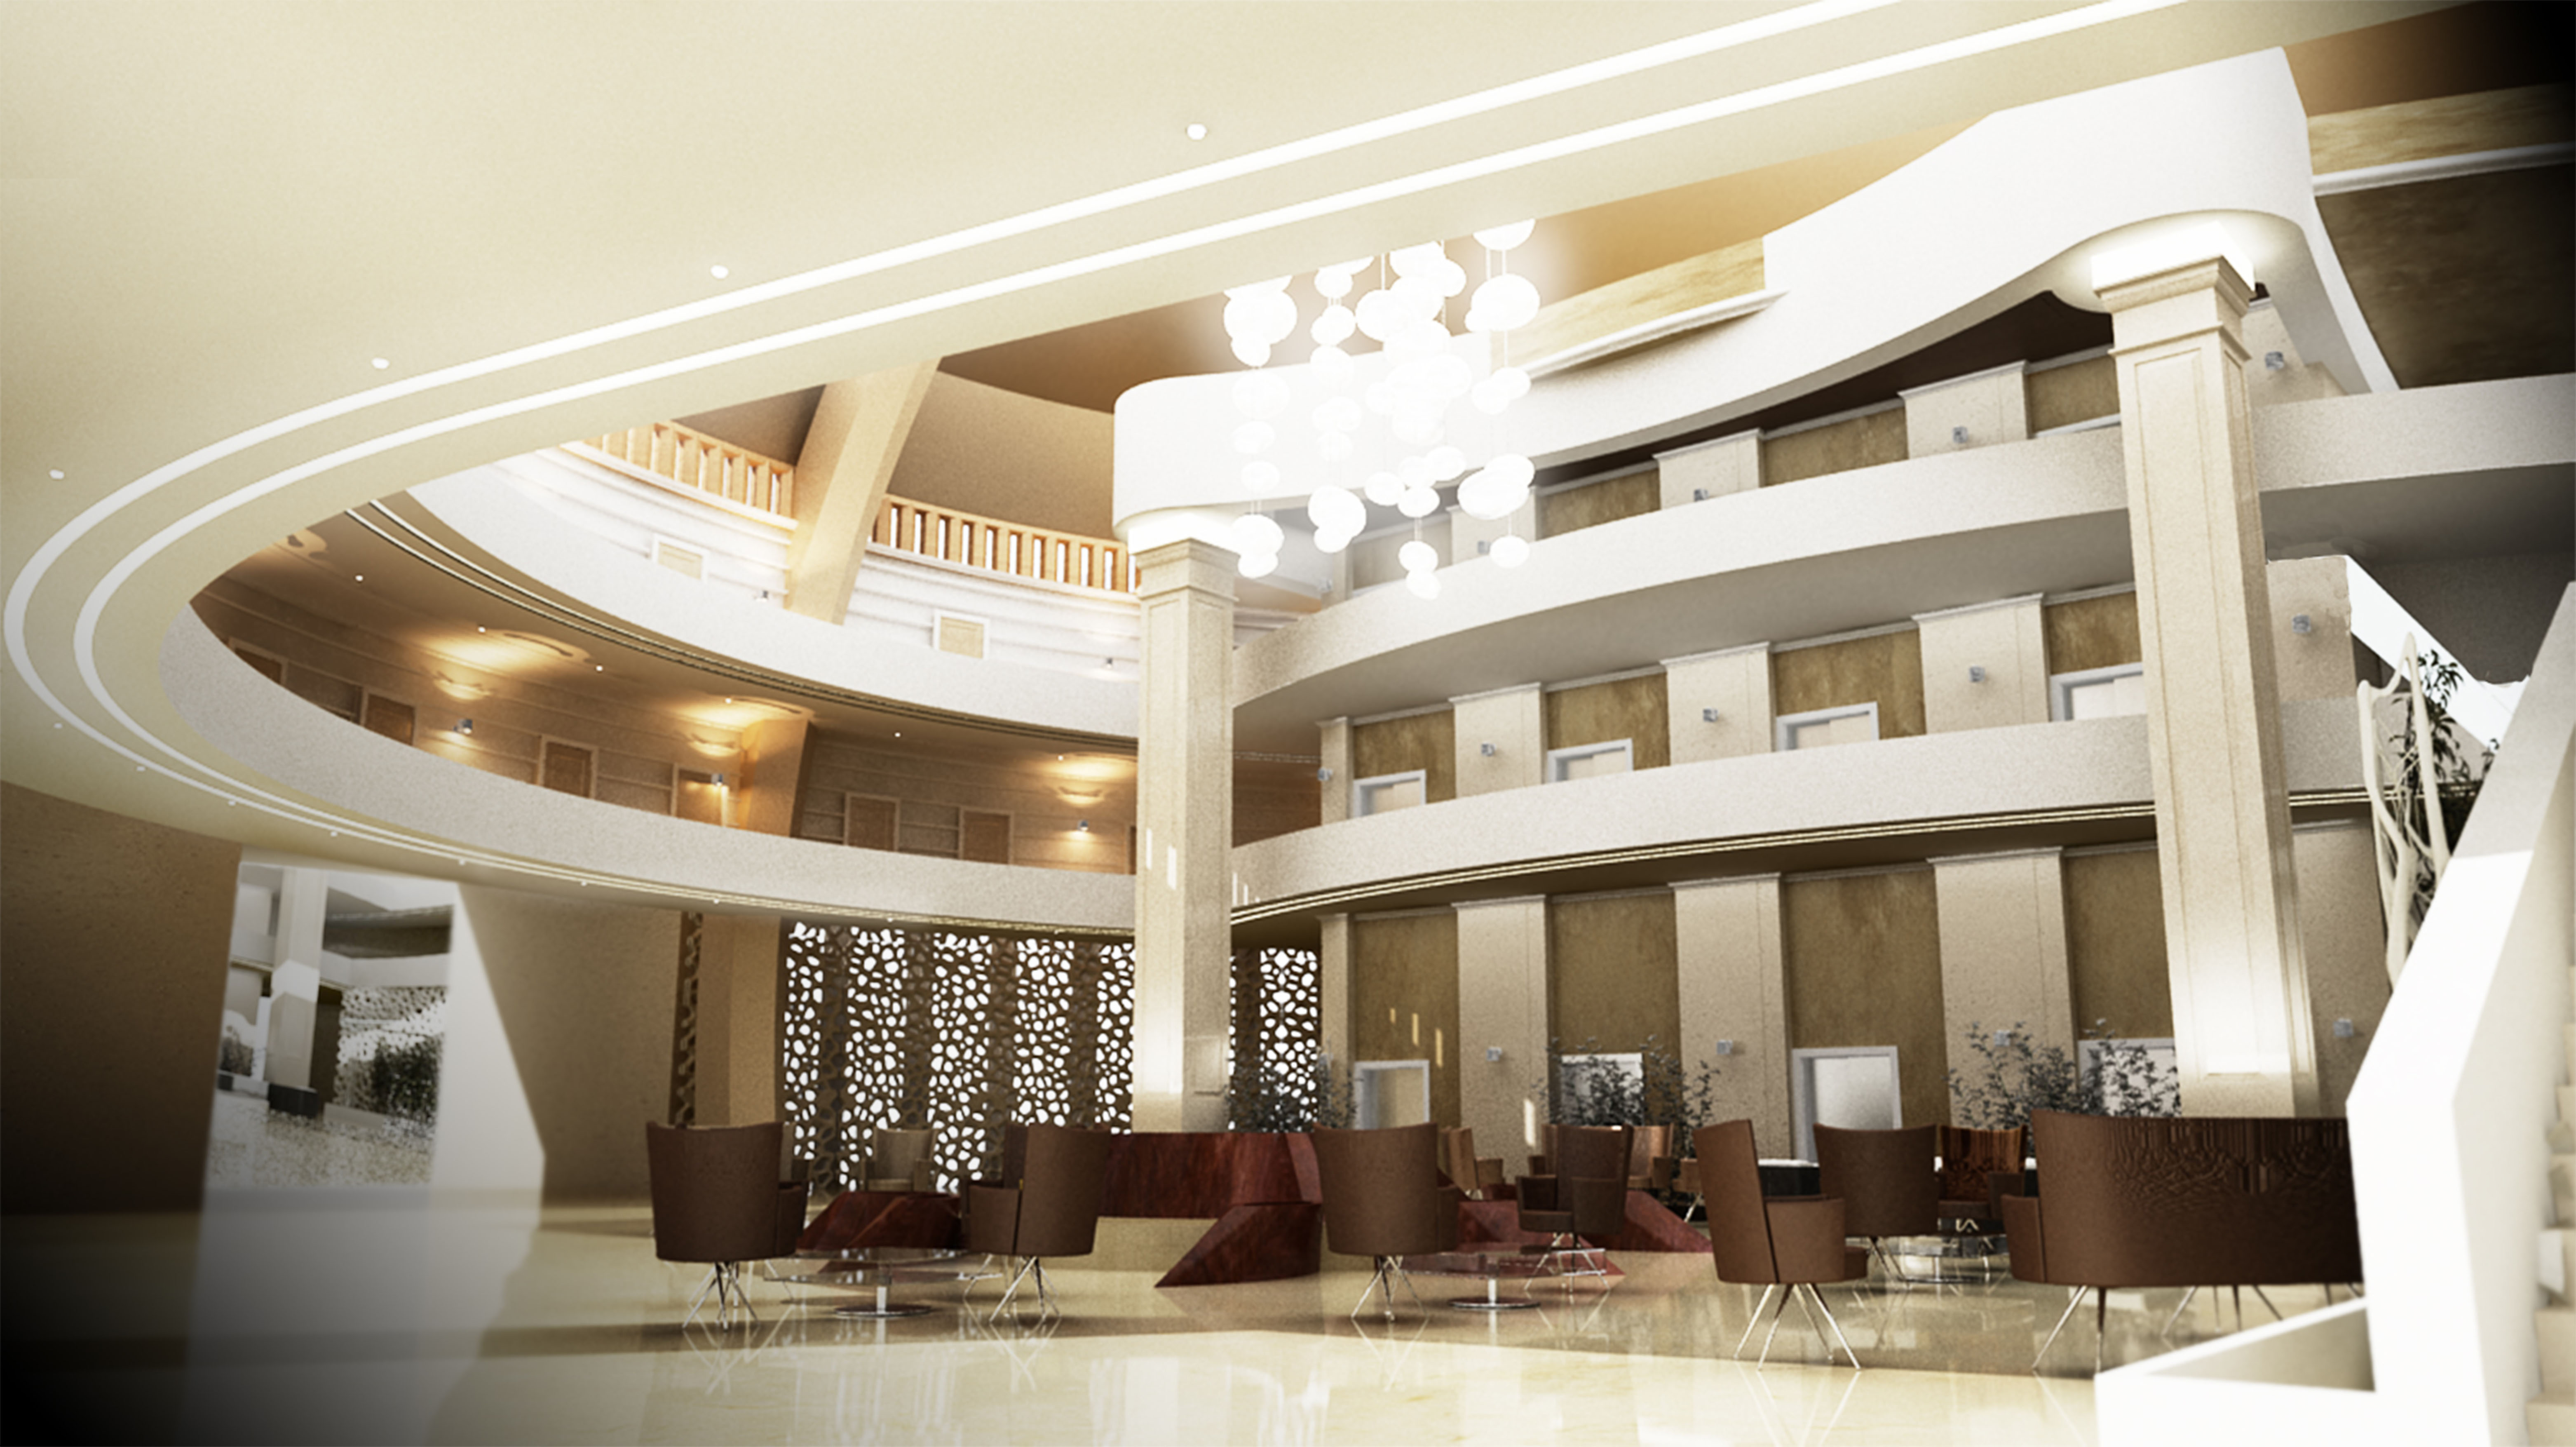 Hotel lobby interior design by mohammed siyamand at for Hotel interior design